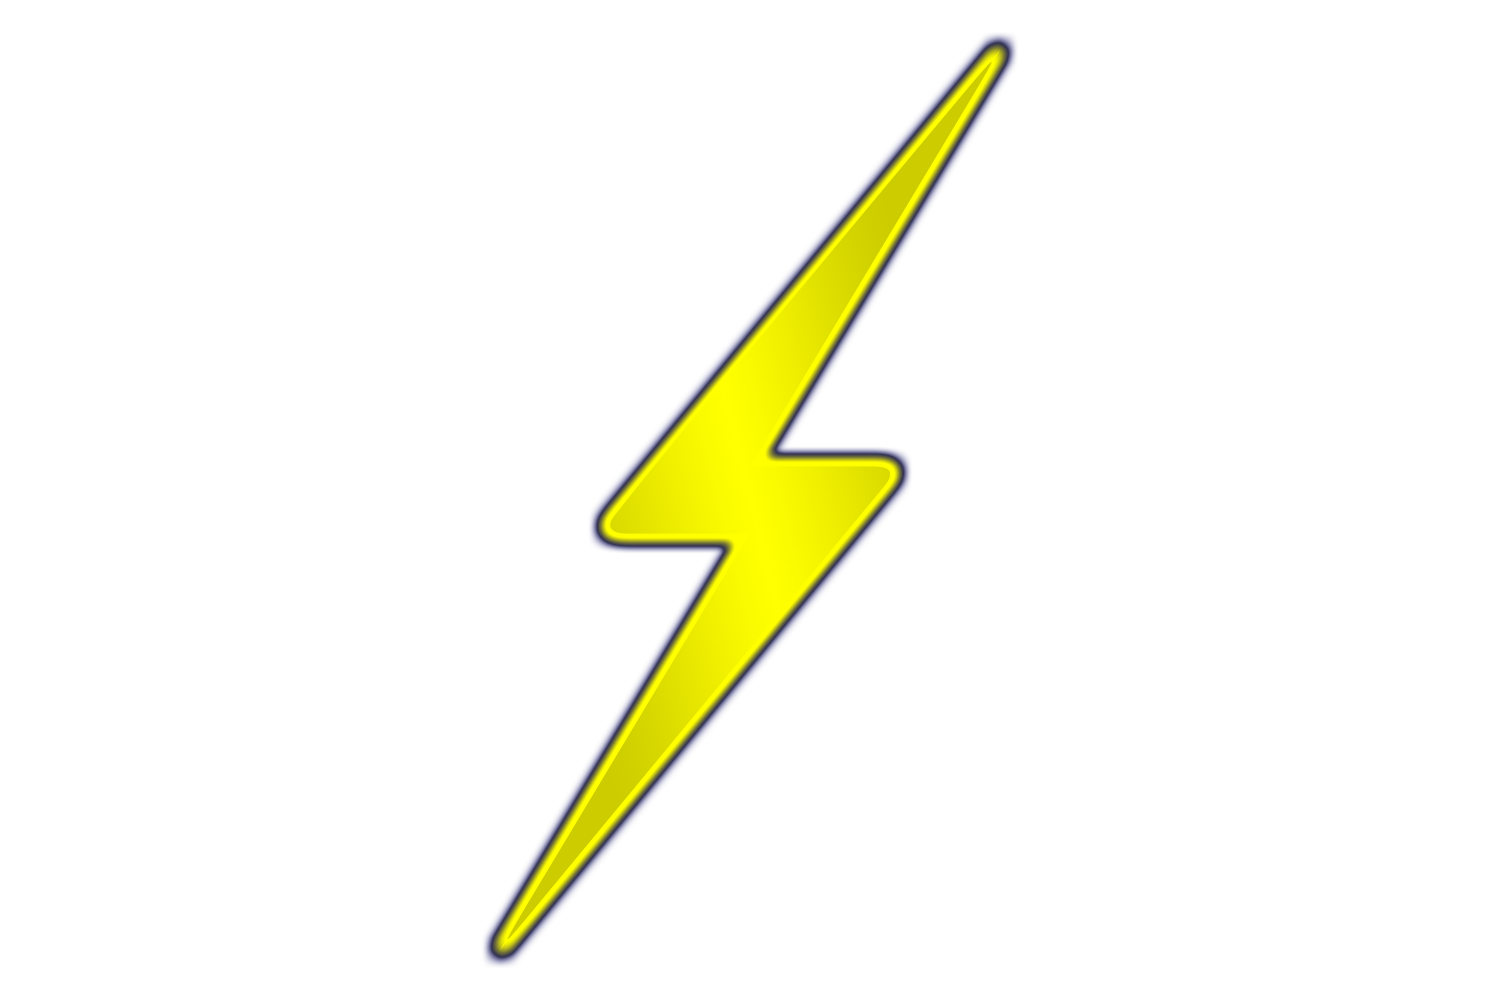 Yellow Lightning Bolt Clipart | Clipart Panda - Free Clipart Images